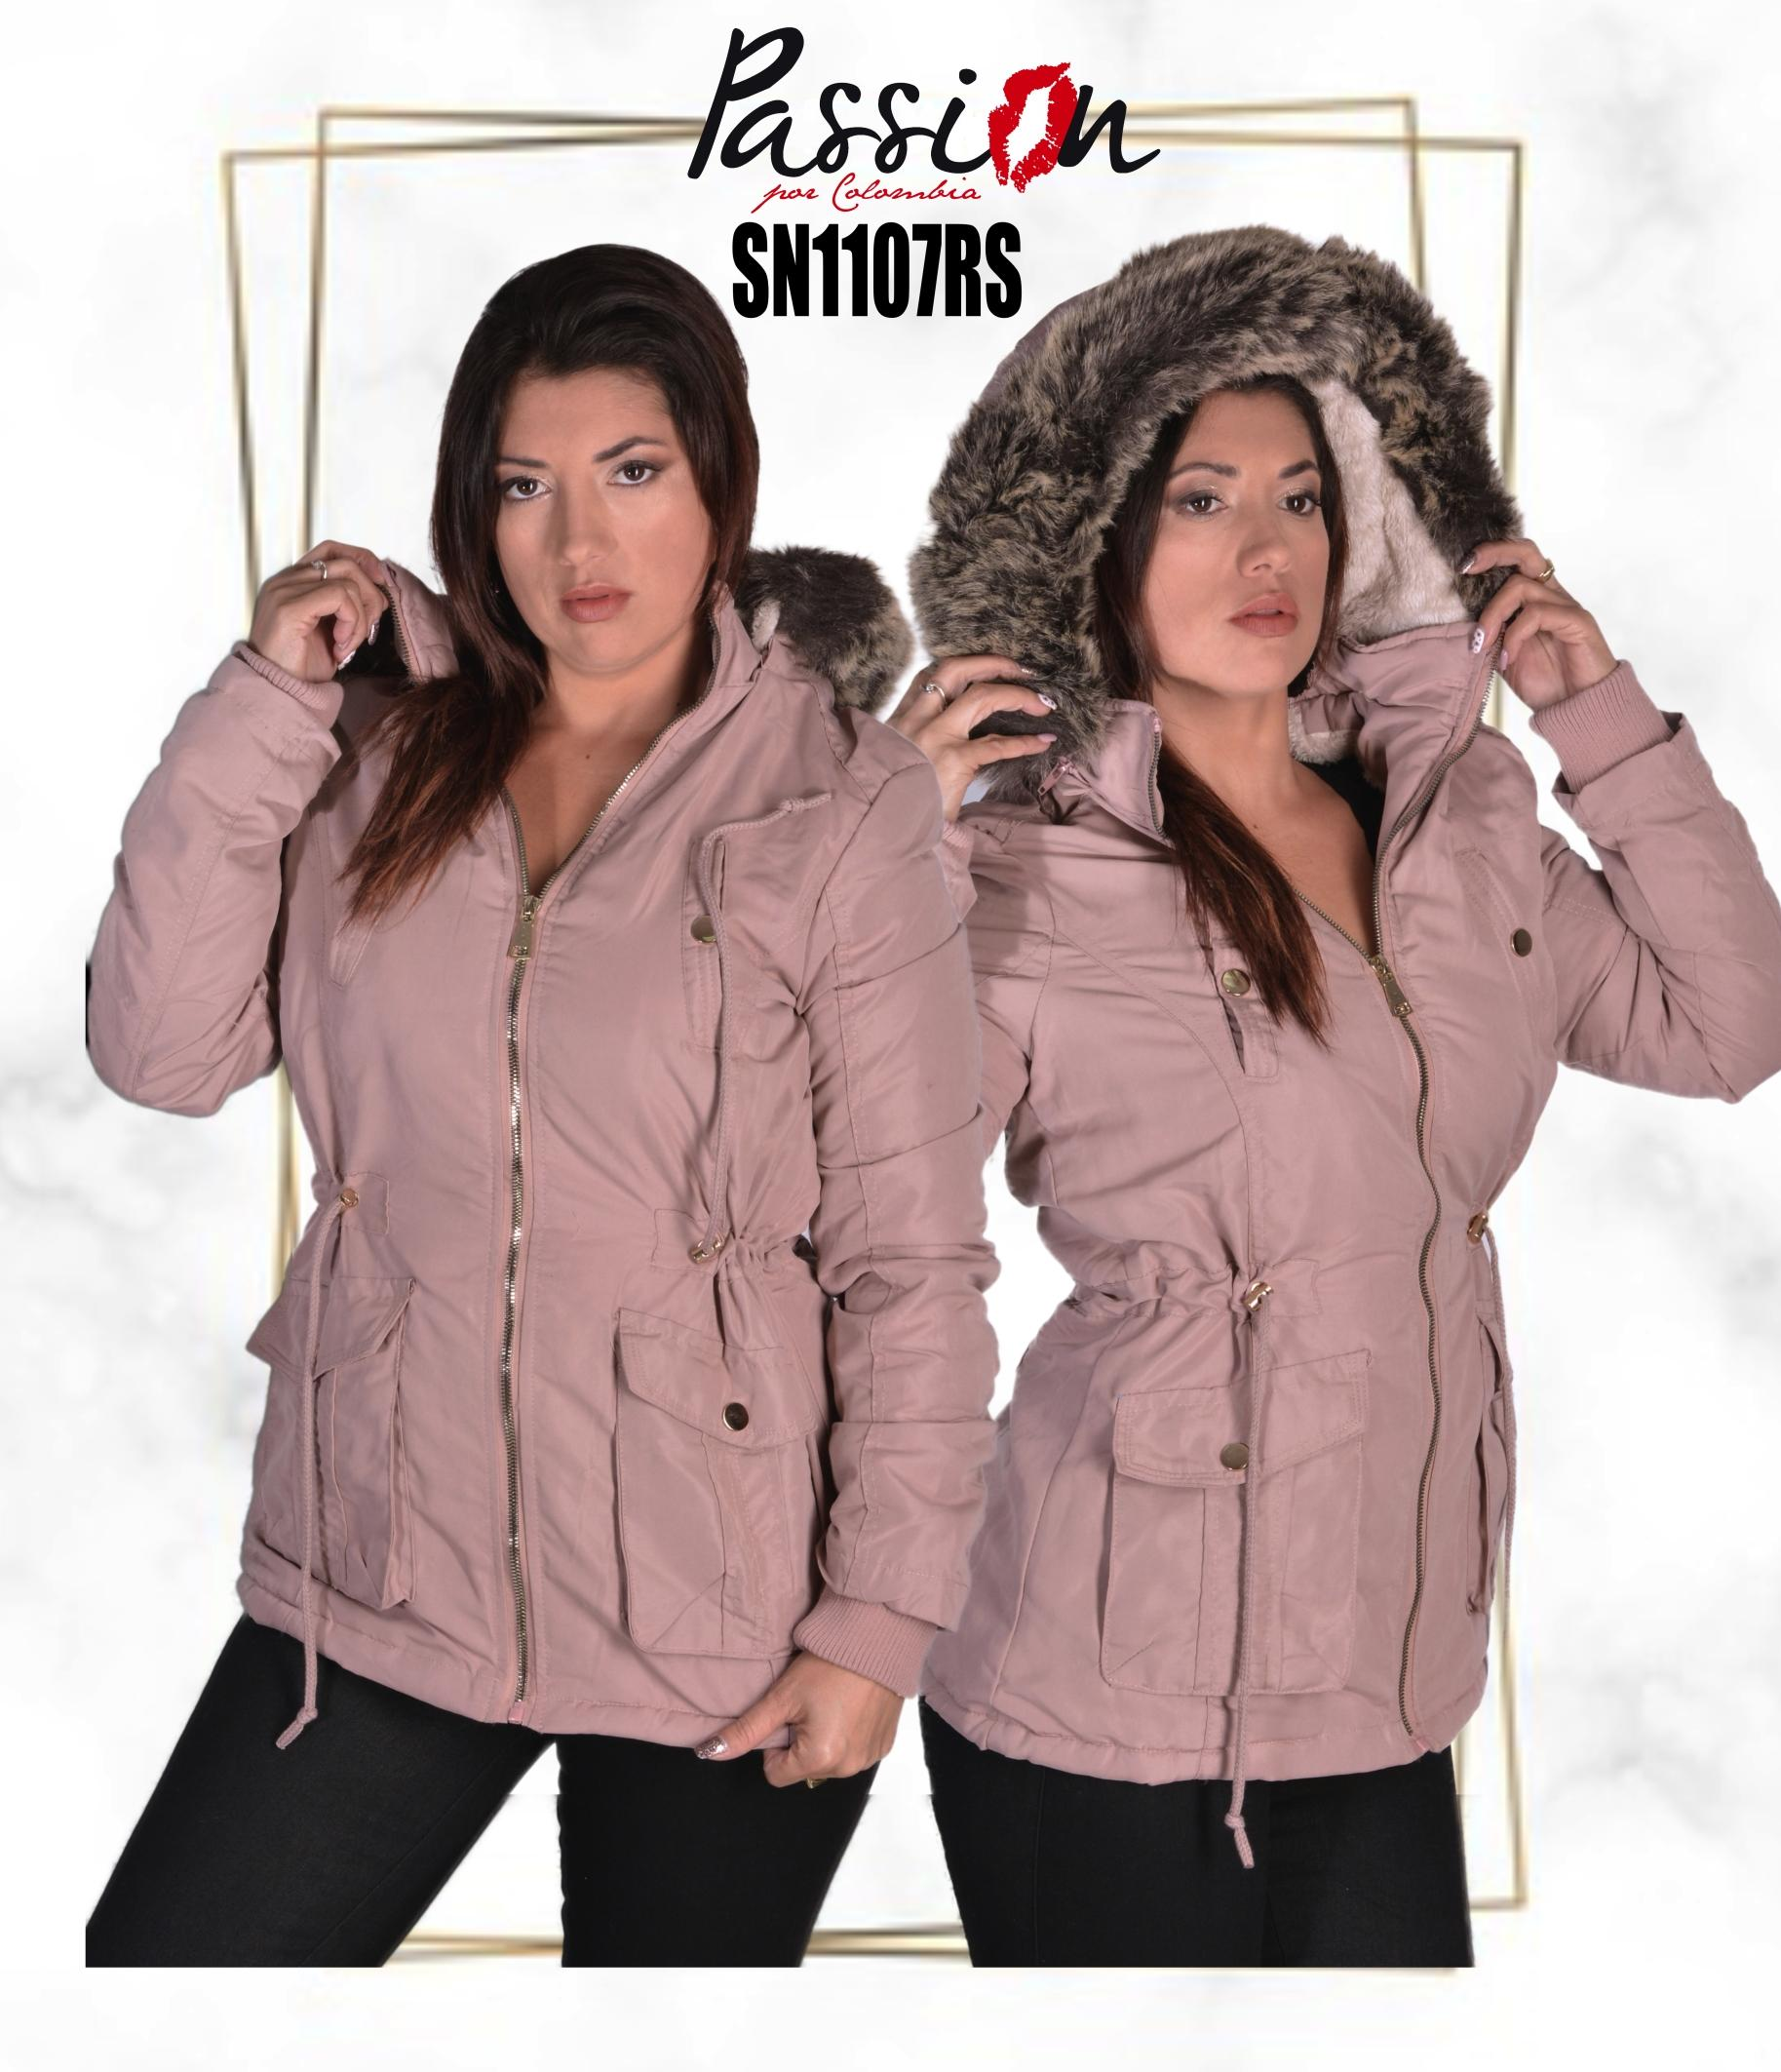 American Style Polar Fashion jacket with front pockets and zippers